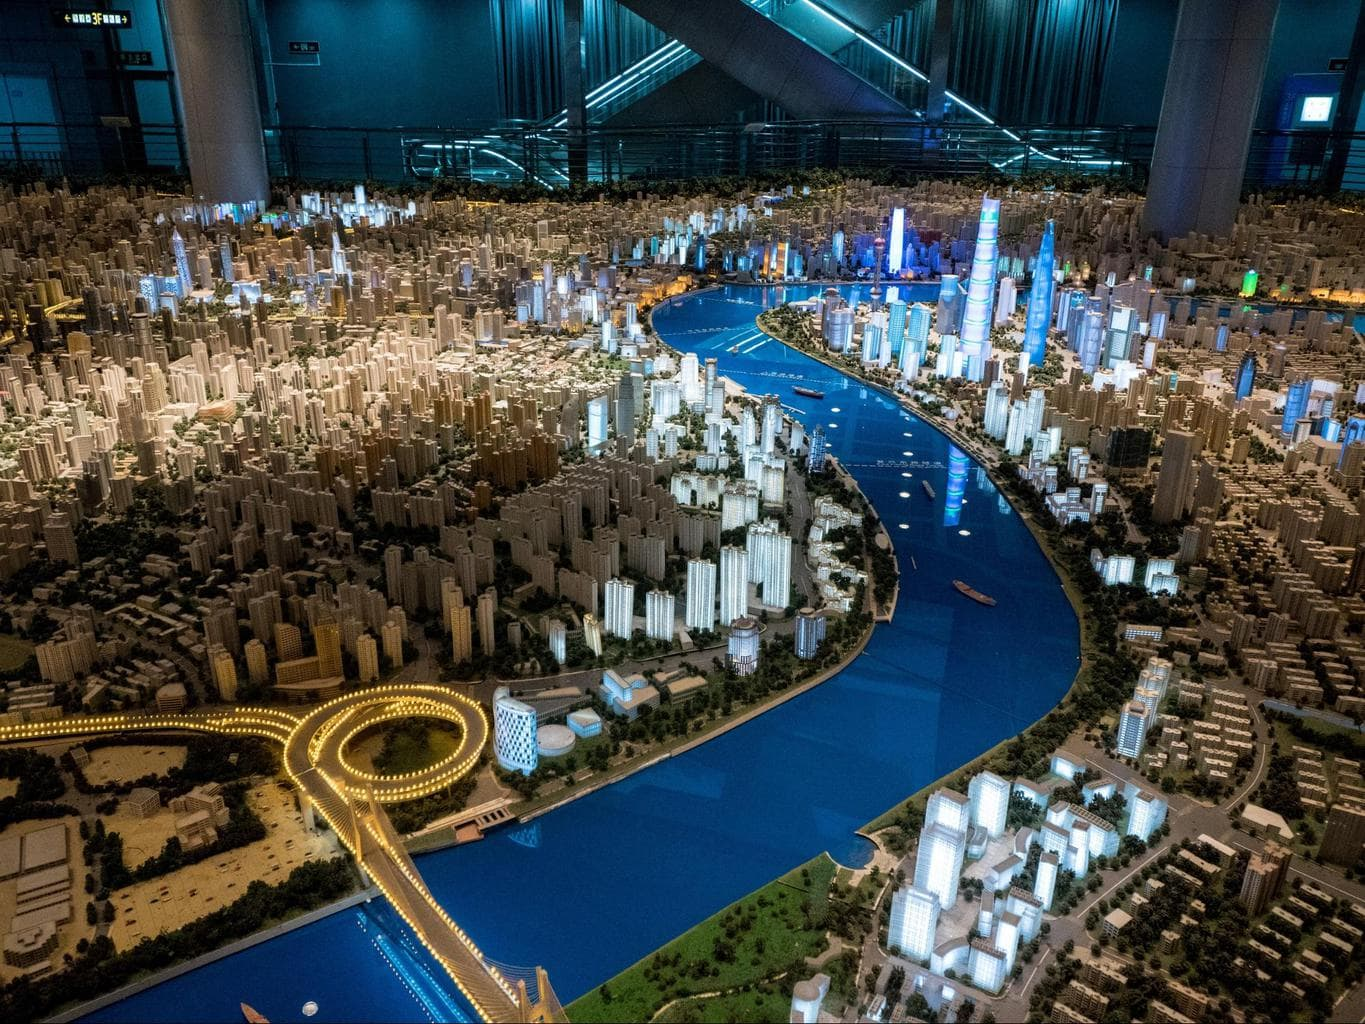 3D model of Shanghai at the Shanghai Urban Planning Exhibition Hall